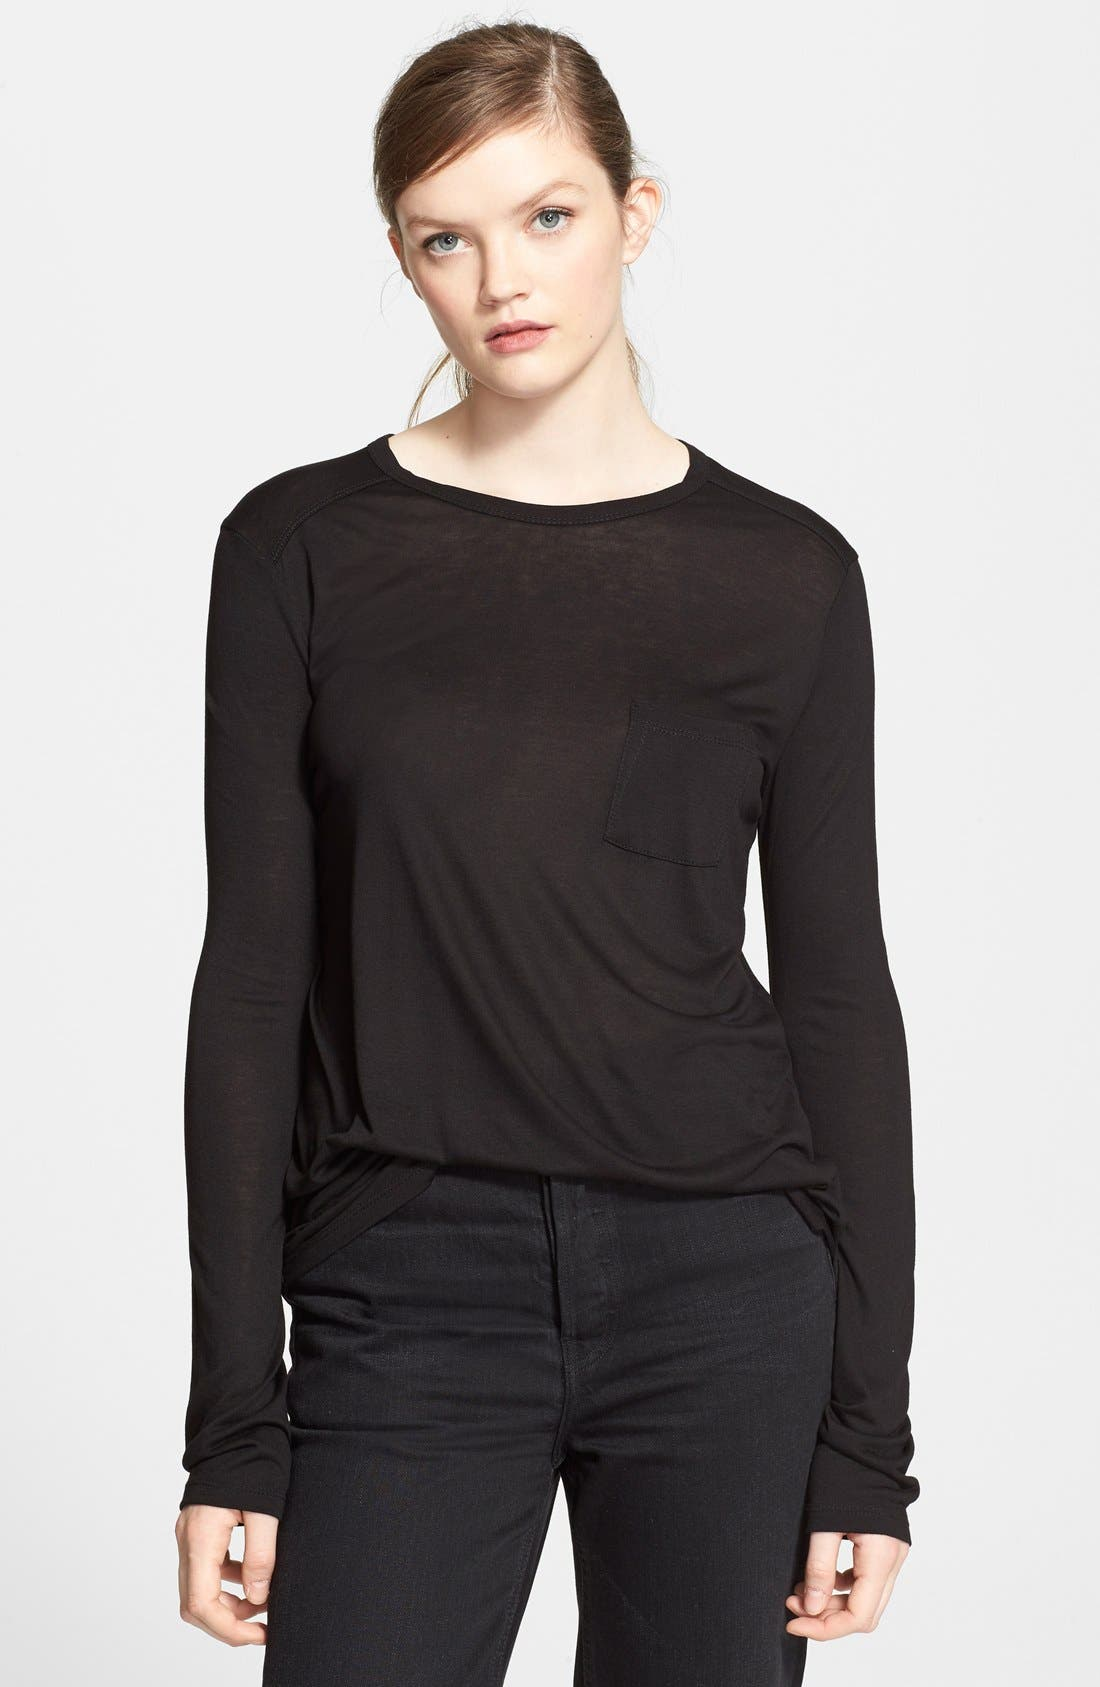 Alternate Image 1 Selected - T by Alexander Wang Long Sleeve Pocket Tee